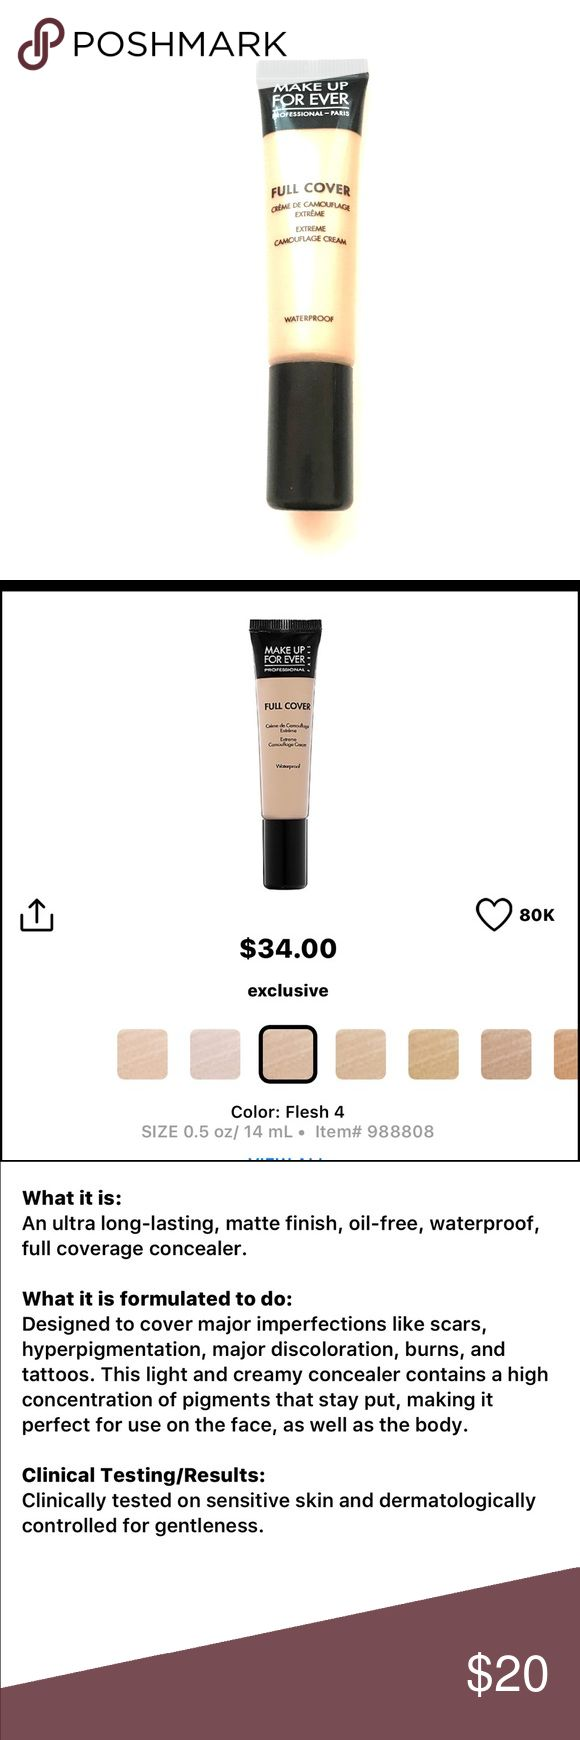 Makeup Forever Full Cover Concealer Makeup Forever Full Cover Waterproof Concealer in shade #4 Flesh. I ordered a few different shades, swatched this shade and it doesn't match my skin tone. Makeup Forever Makeup Concealer